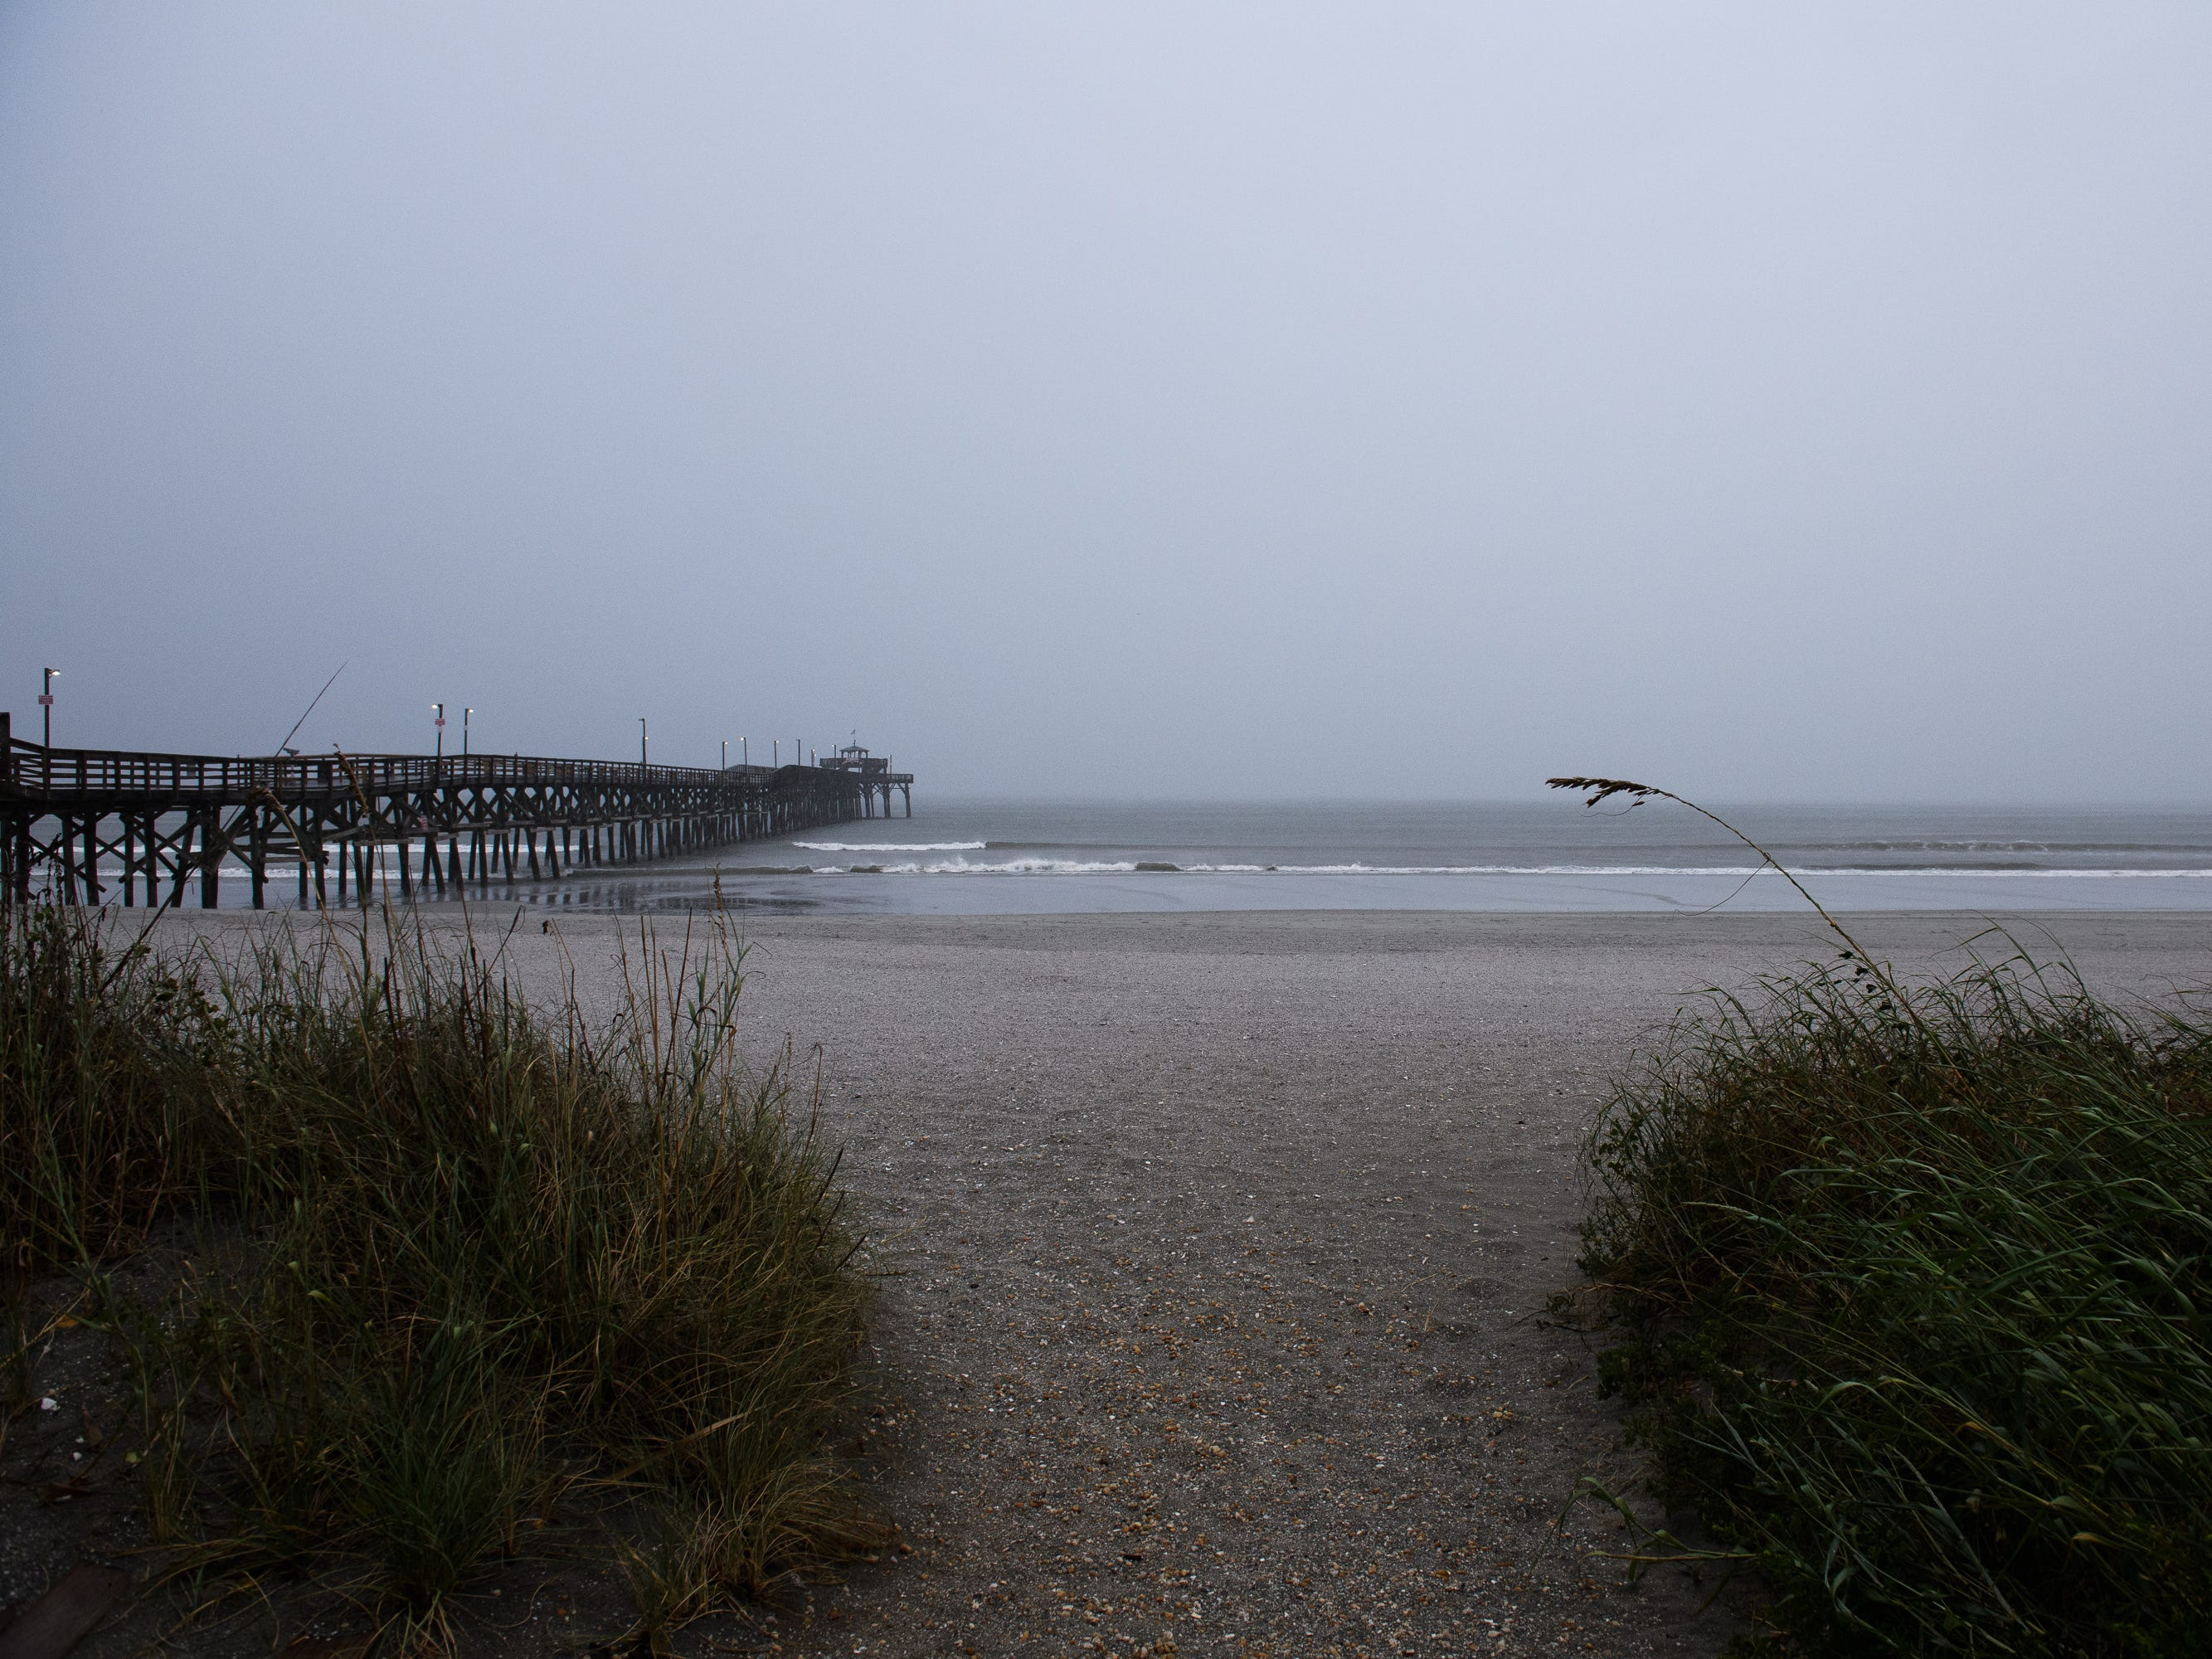 The first rain from a stray outer band of Hurricane Florence hits the Cherry Grove Pier area of North Myrtle Beach on Thursday, Sept. 13, 2018.